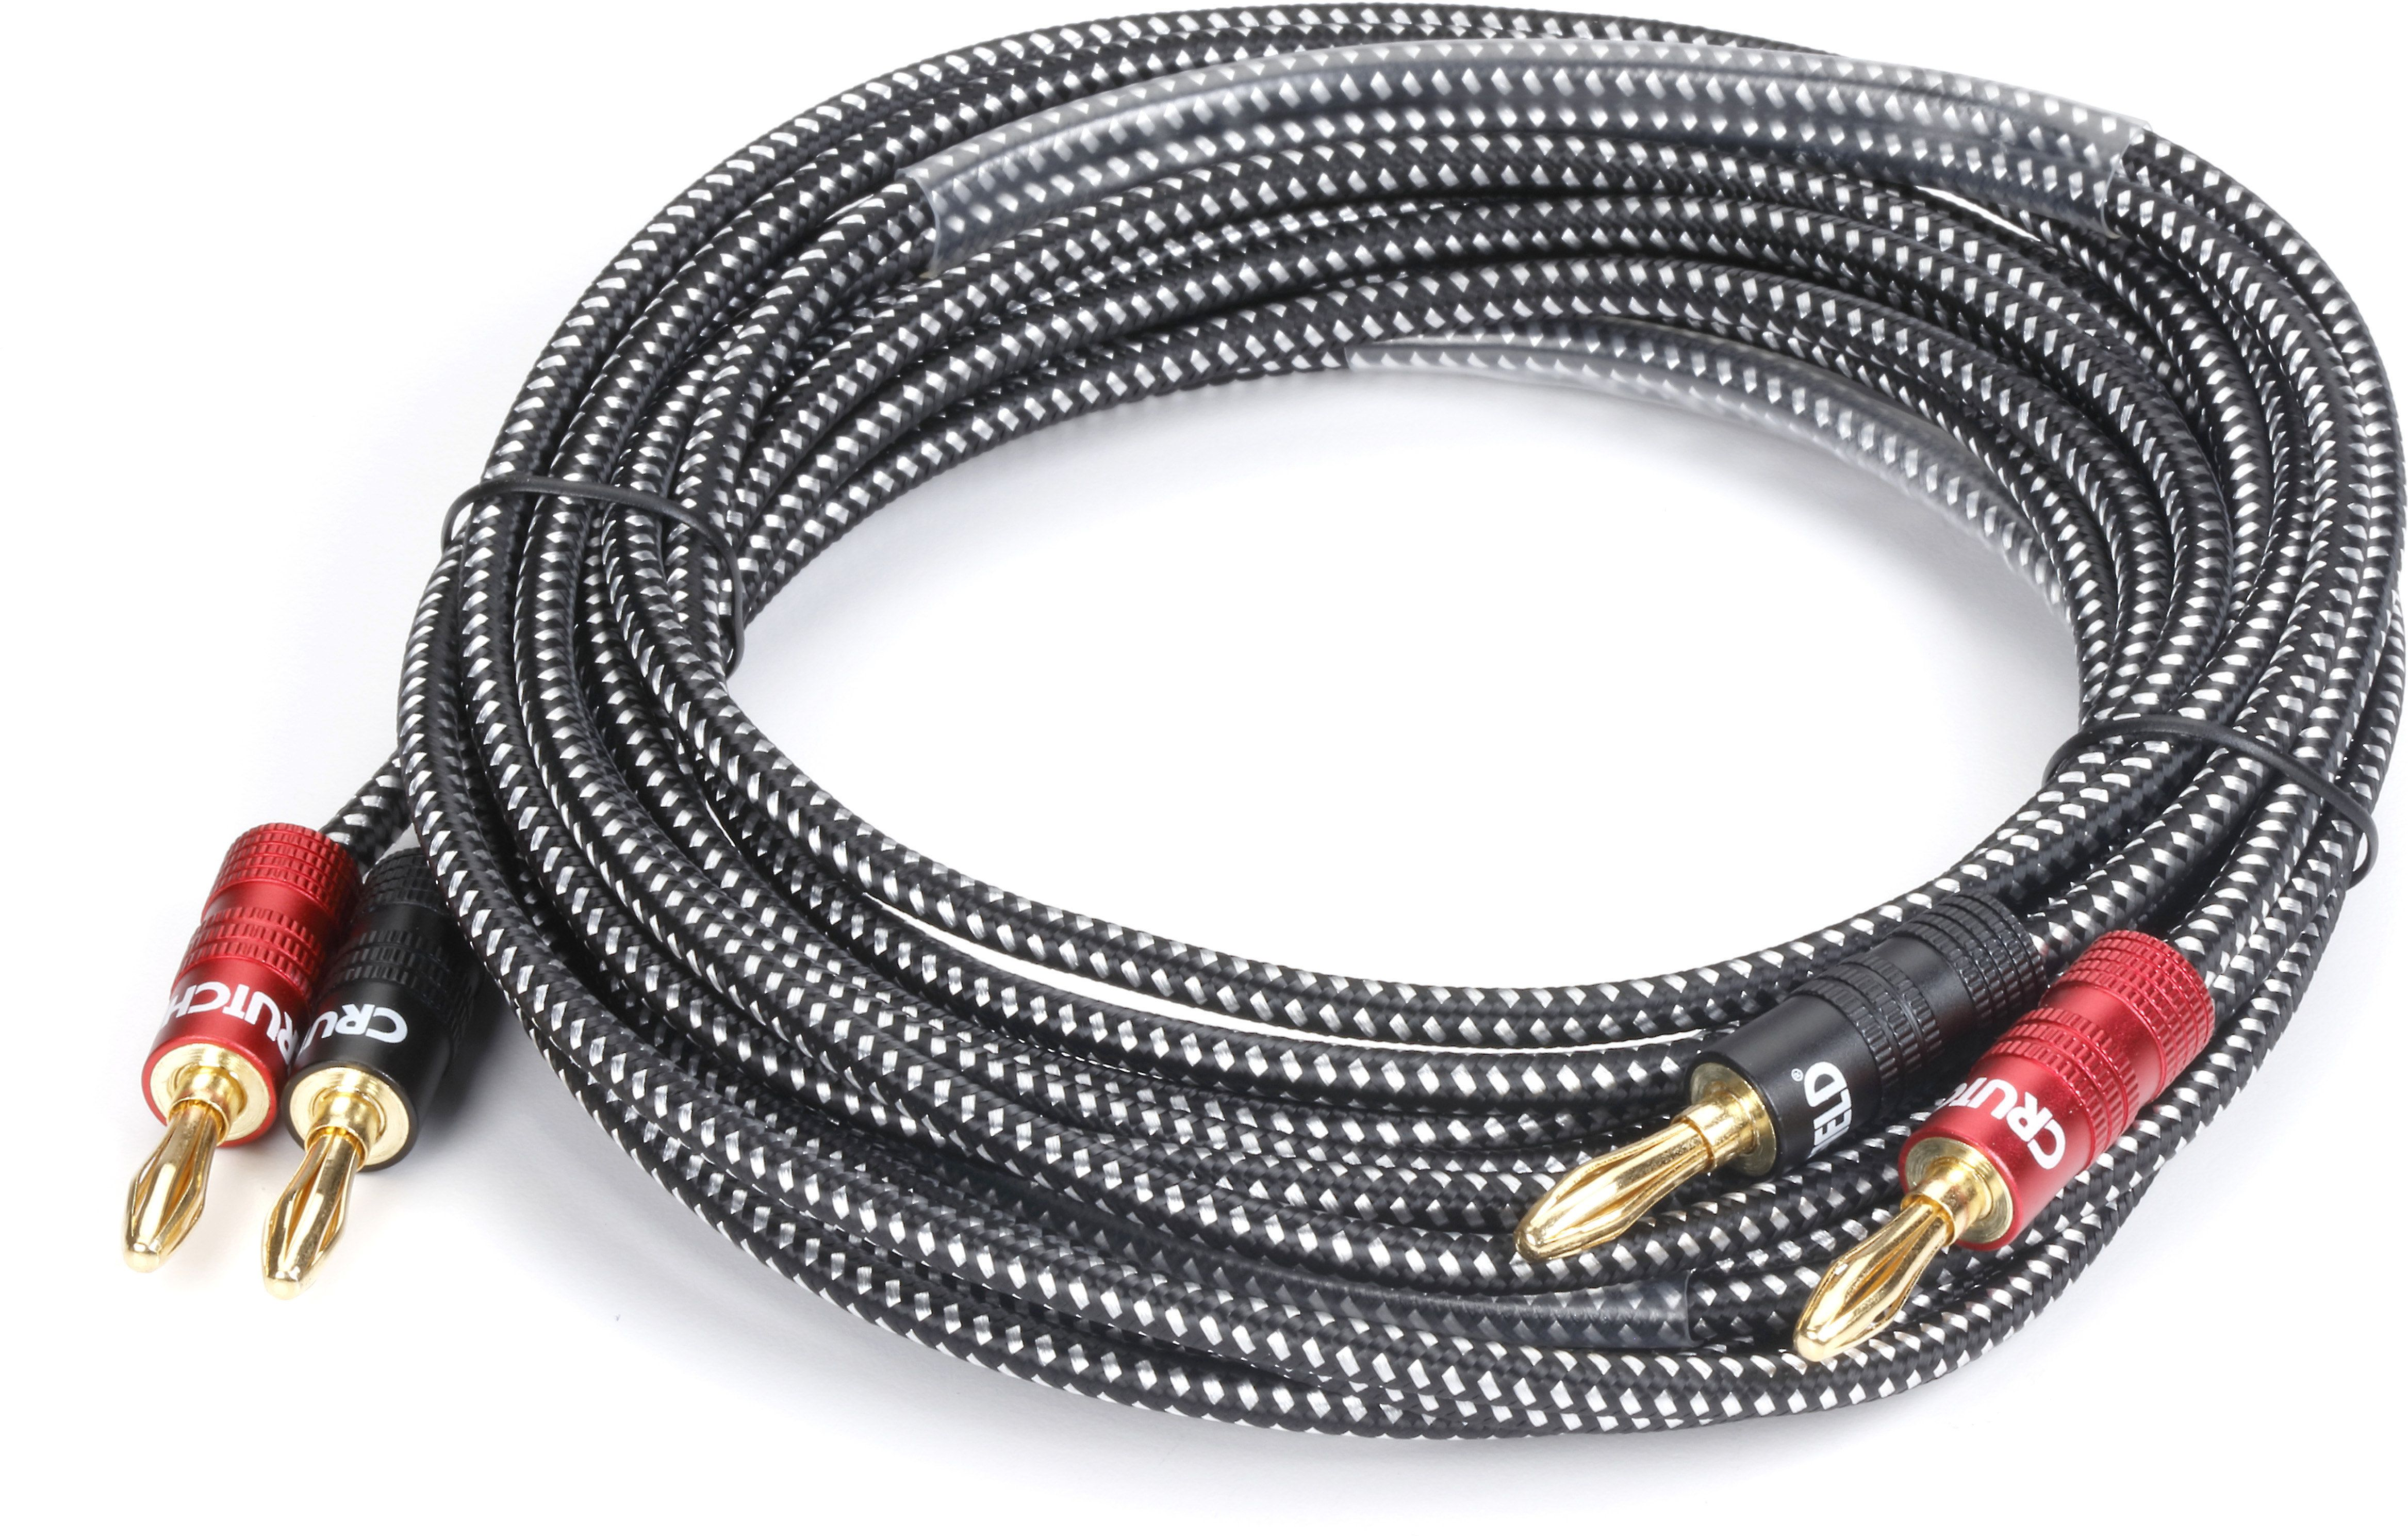 medium resolution of our crutchfield speaker wire with pre attached banana plugs provides an easy secure connection between your speakers and receiver or amplifier the